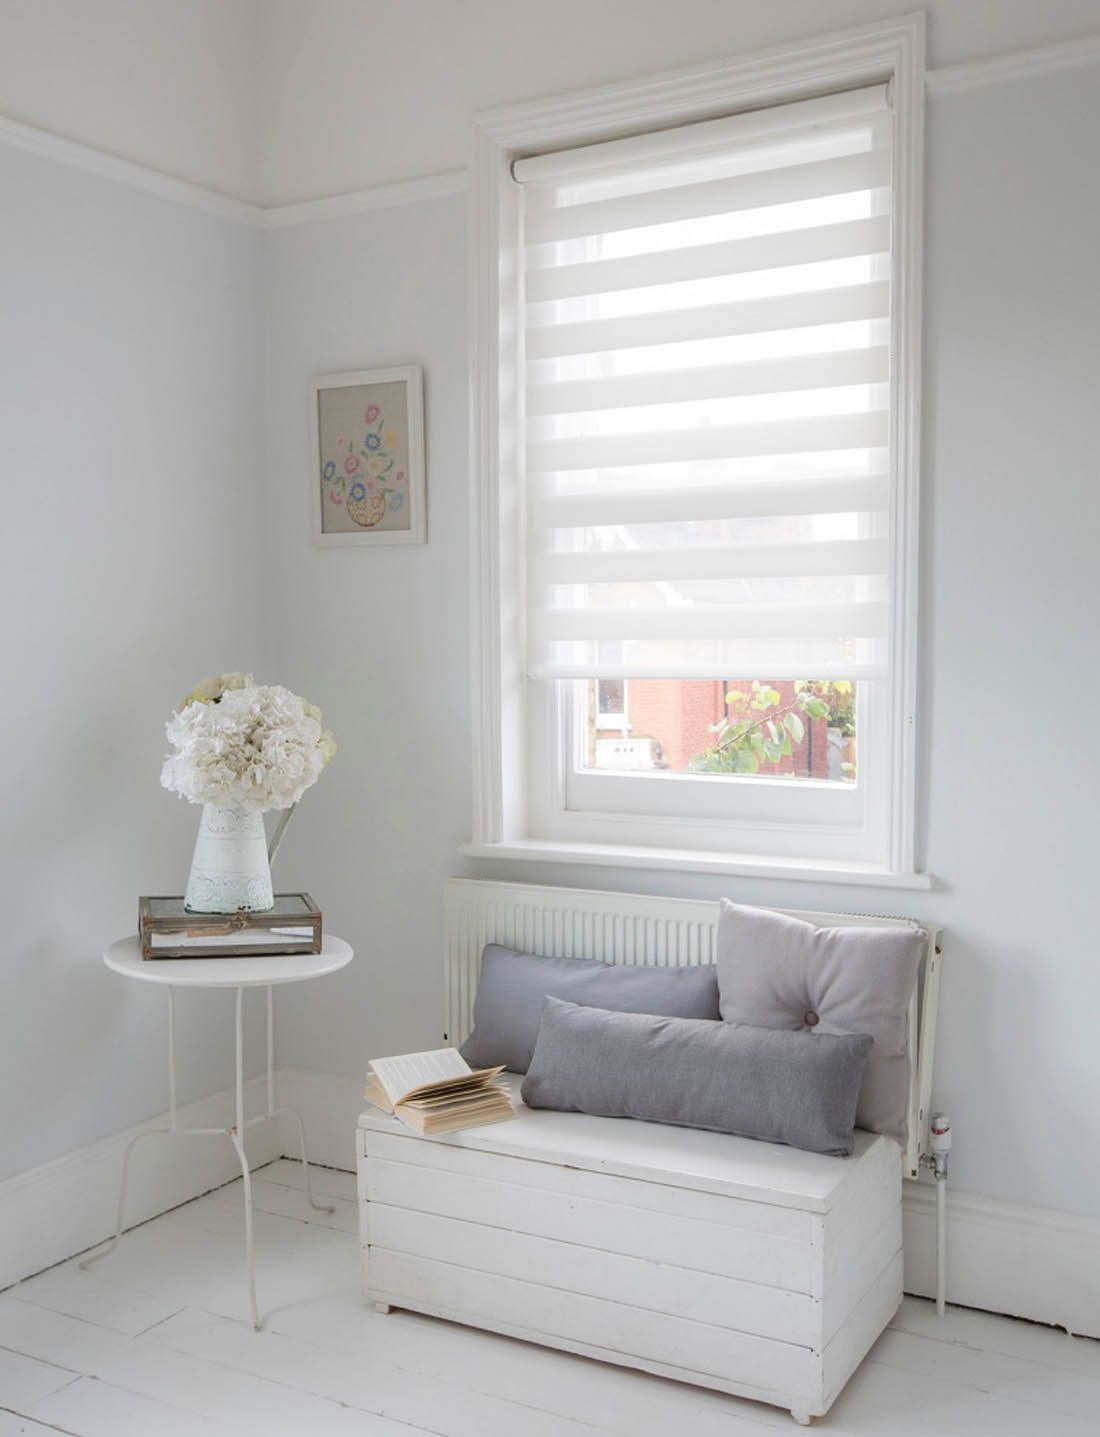 Twist shades from Luxaflex | Making the most of your windows ...